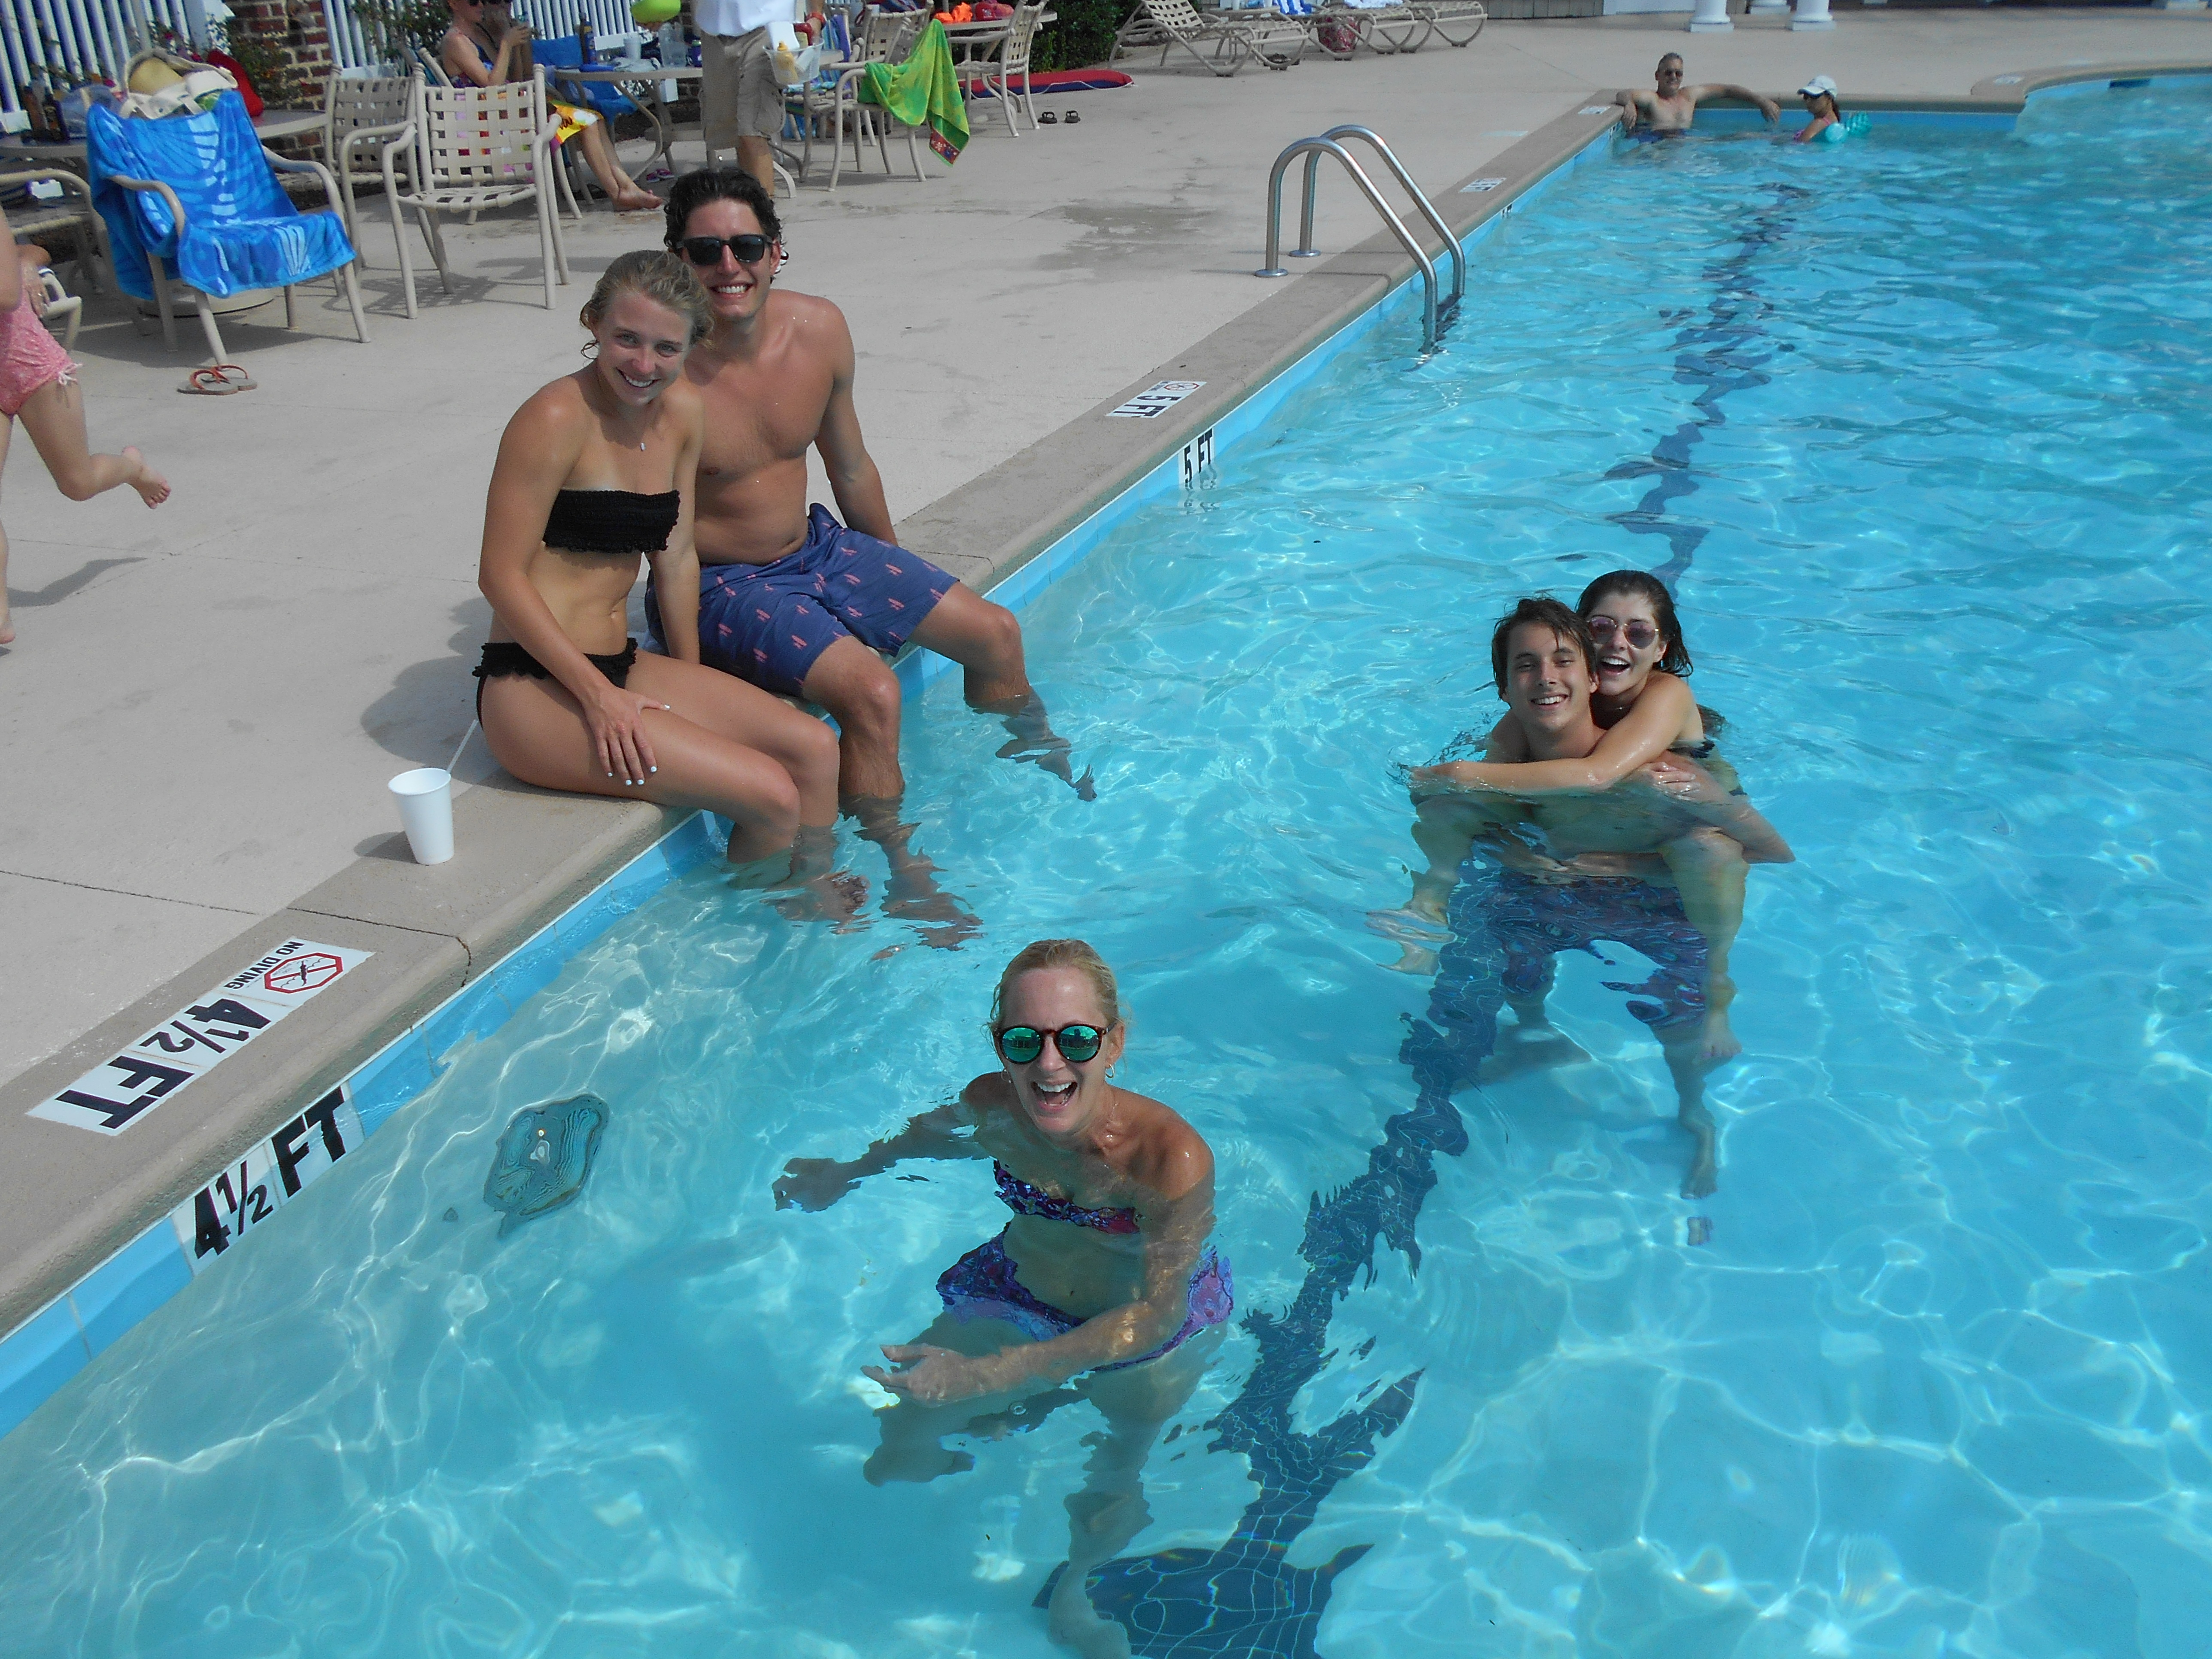 Friends in the pool at Reserve Harbor Yacht Club